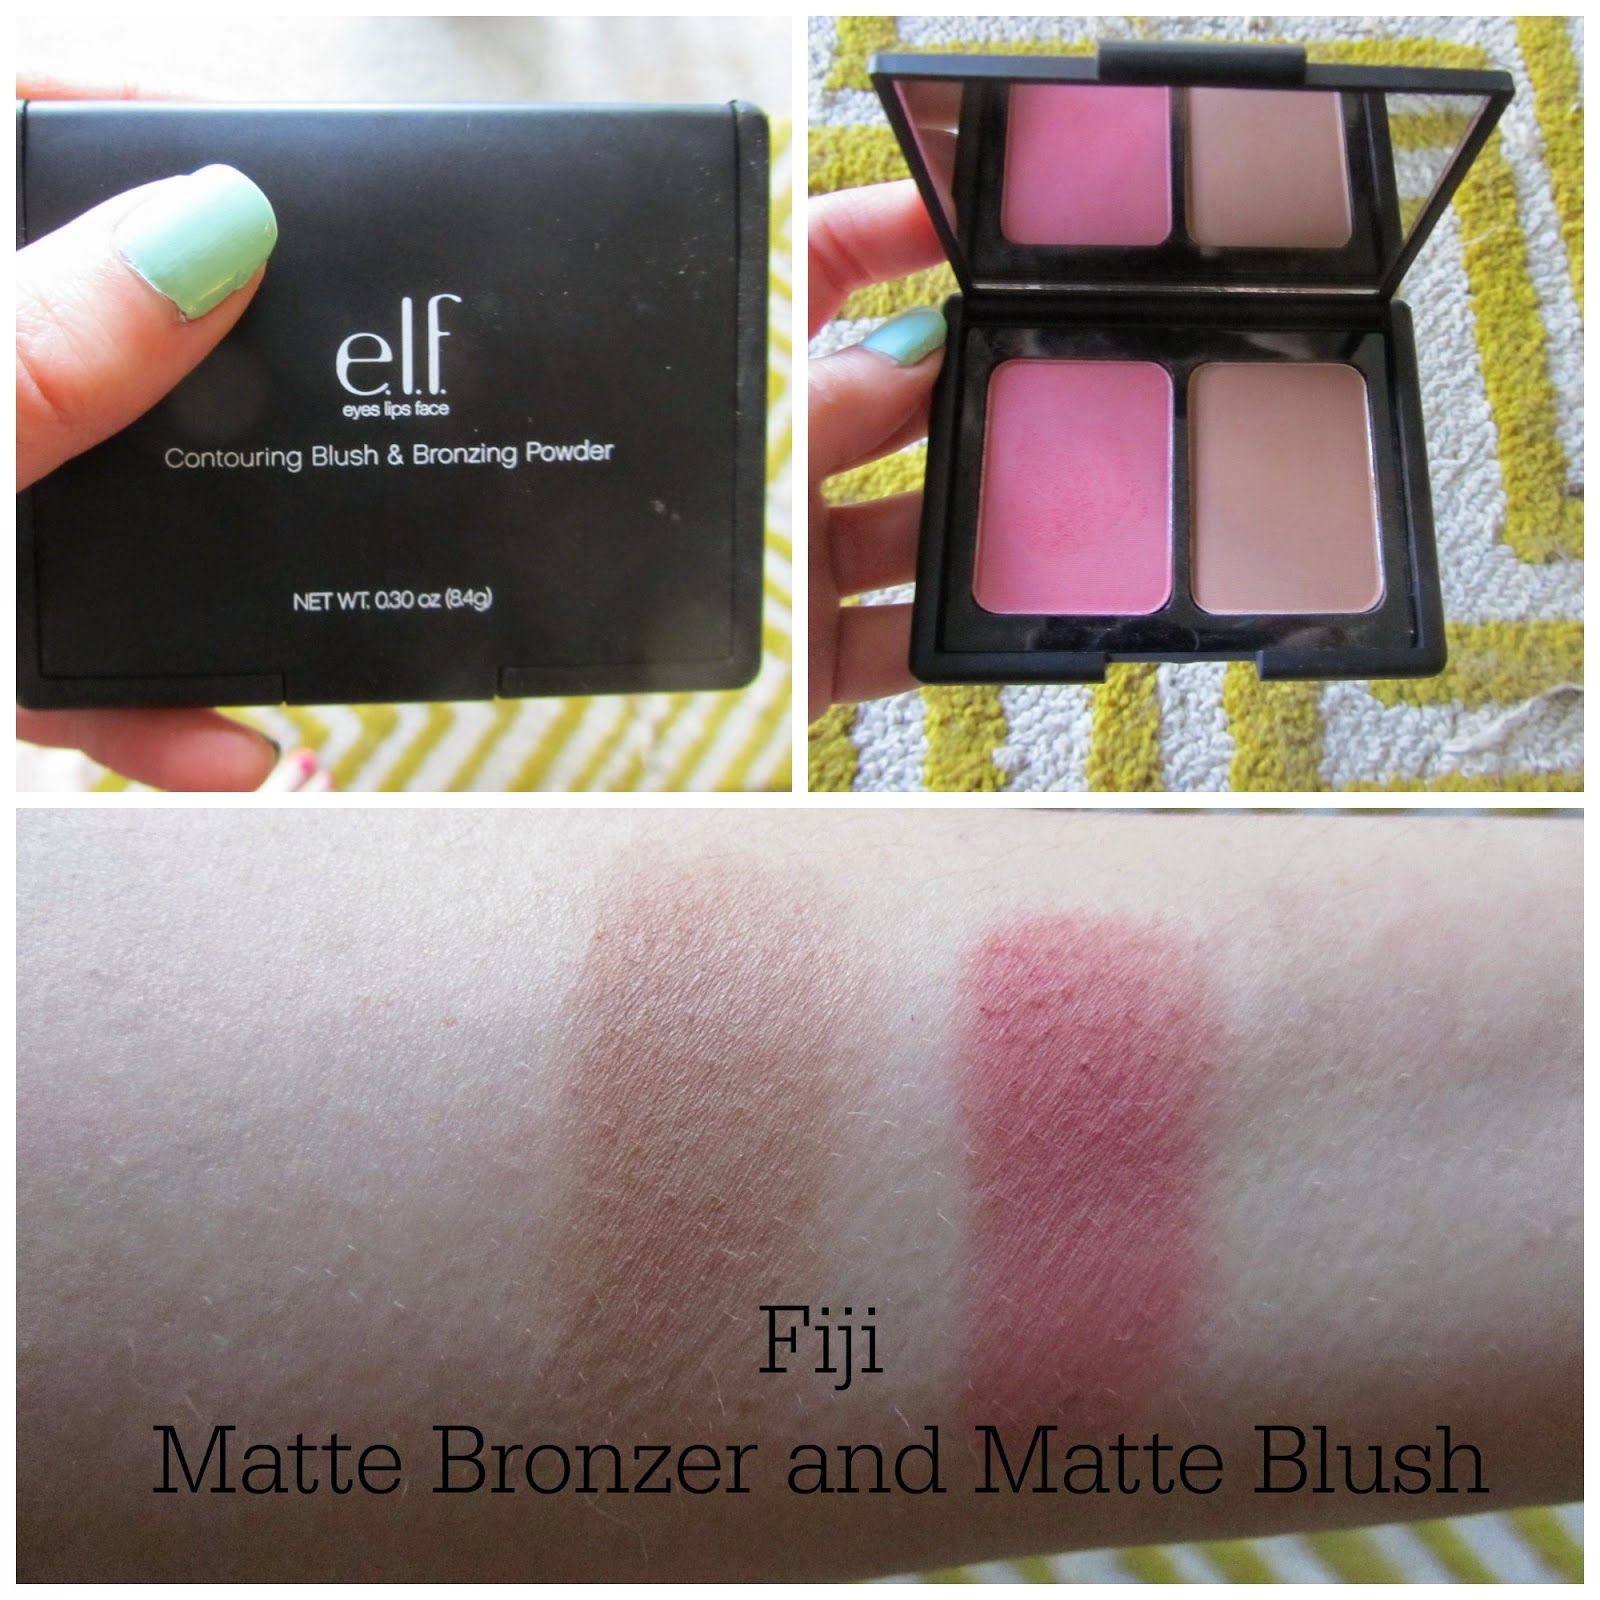 elf contouring blush and bronzing powder review indonesia